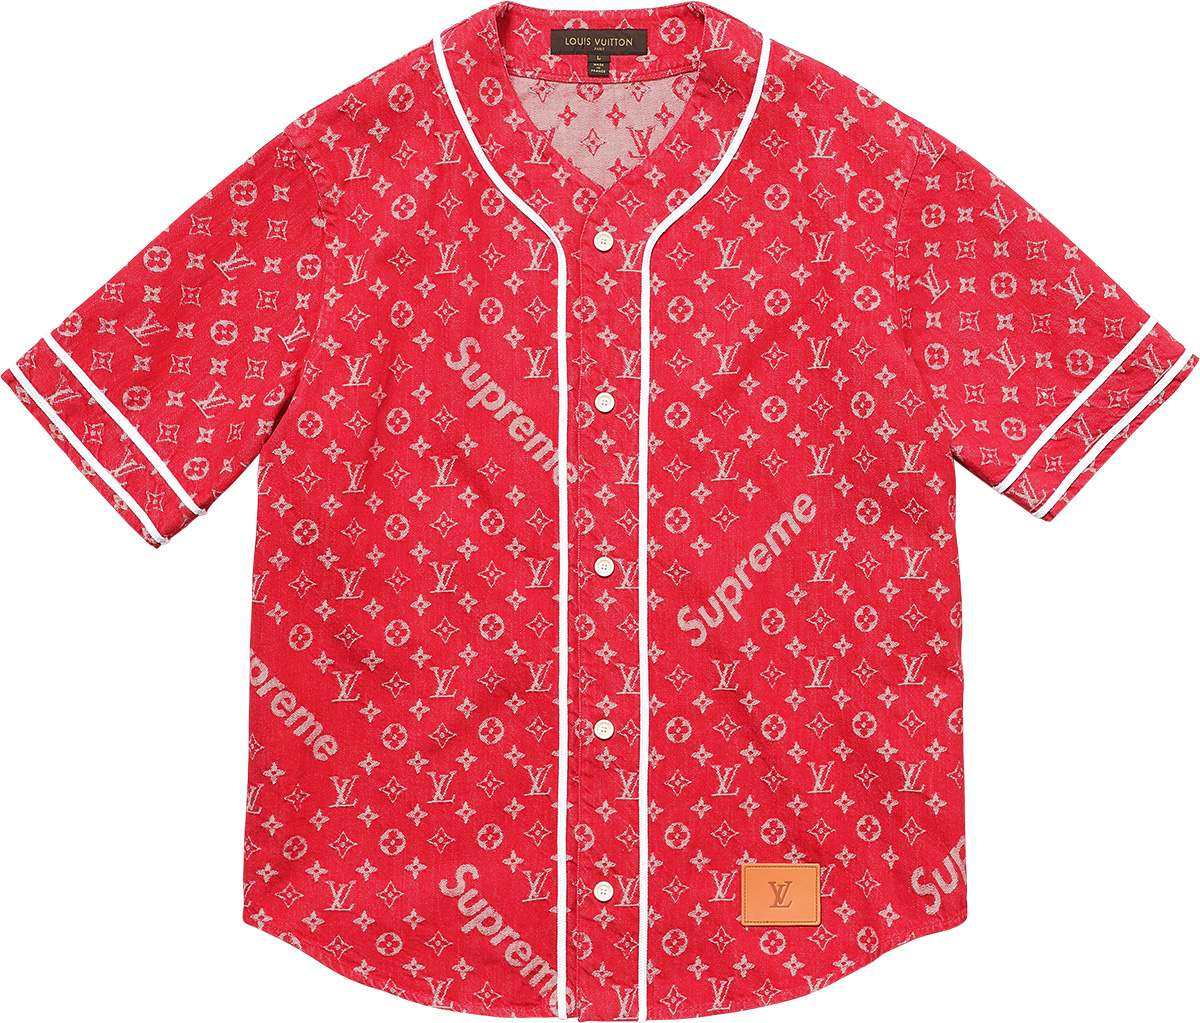 Louis Vuitton Supreme Red Denim Baseball Jersey